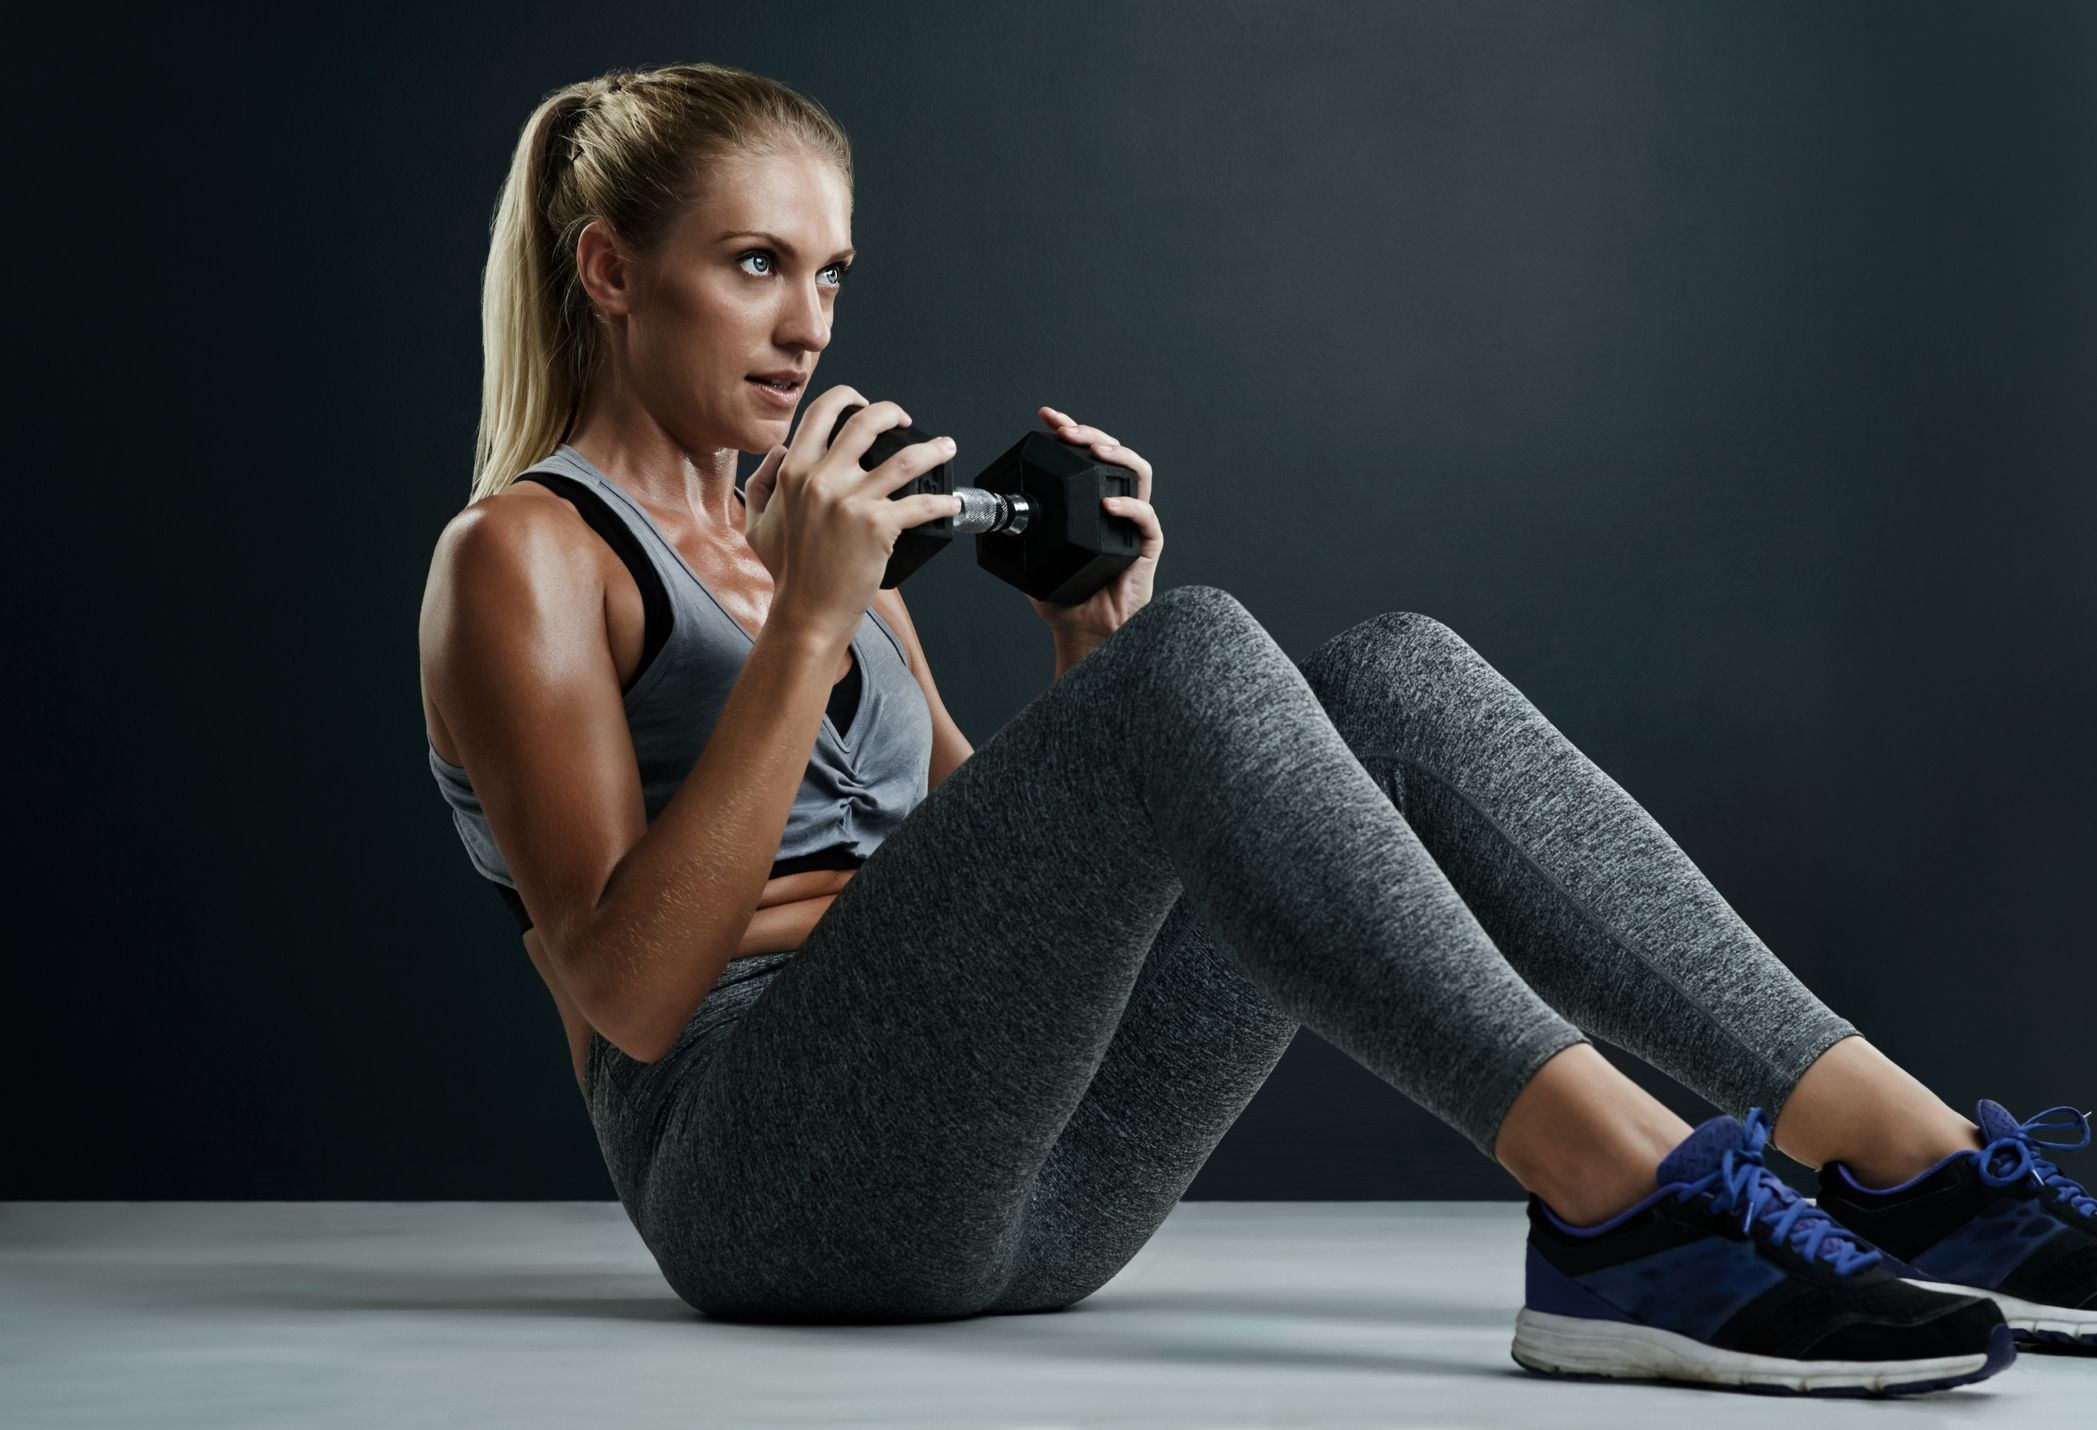 Weighted Abs Exercise - Dumbbell Exercises for Abs